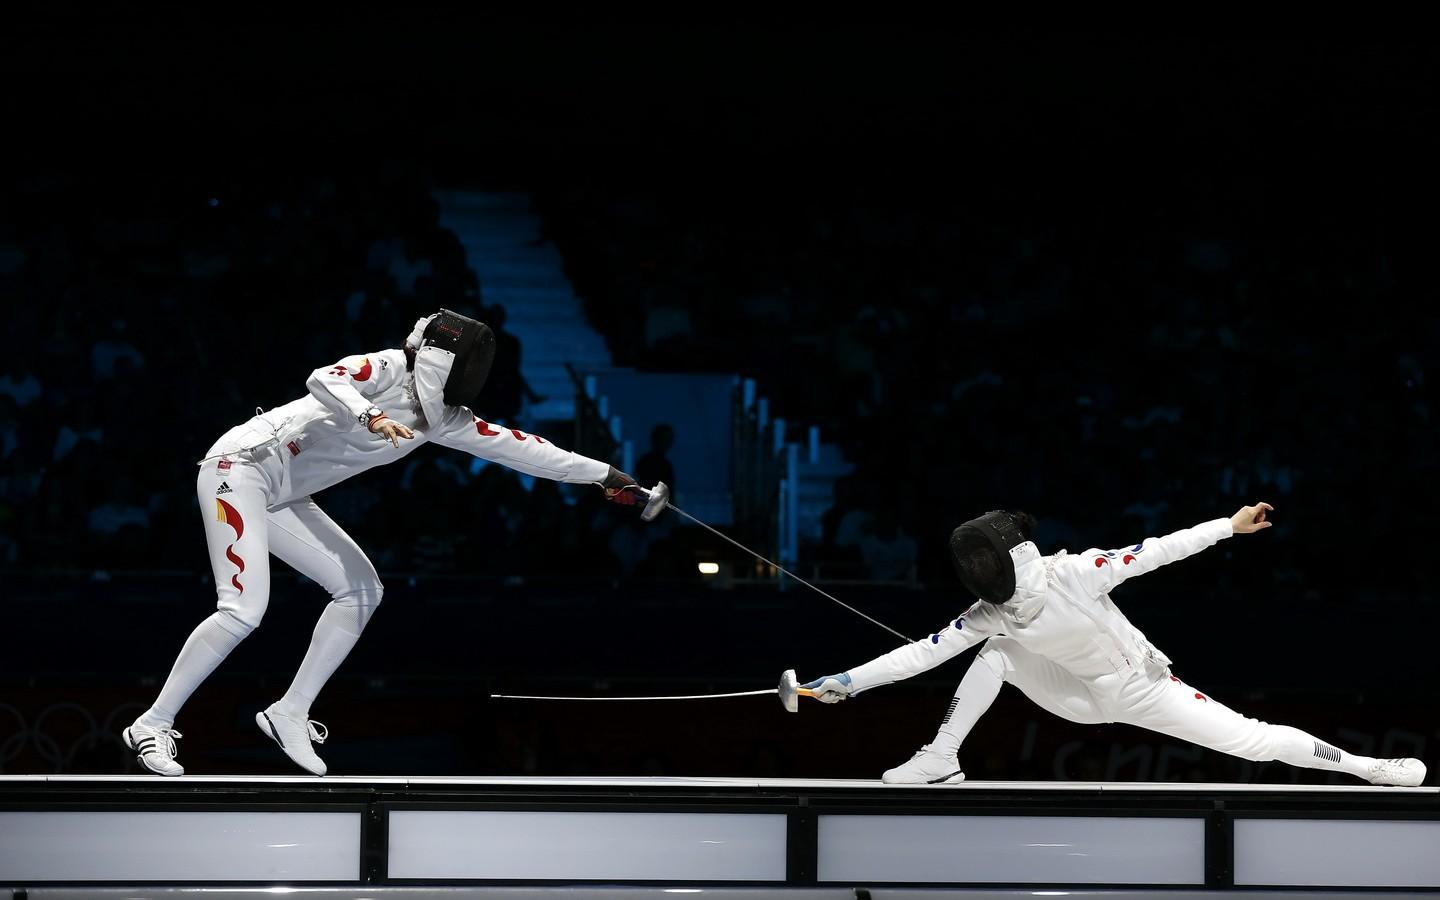 1440x900 - Fencing Wallpapers 30